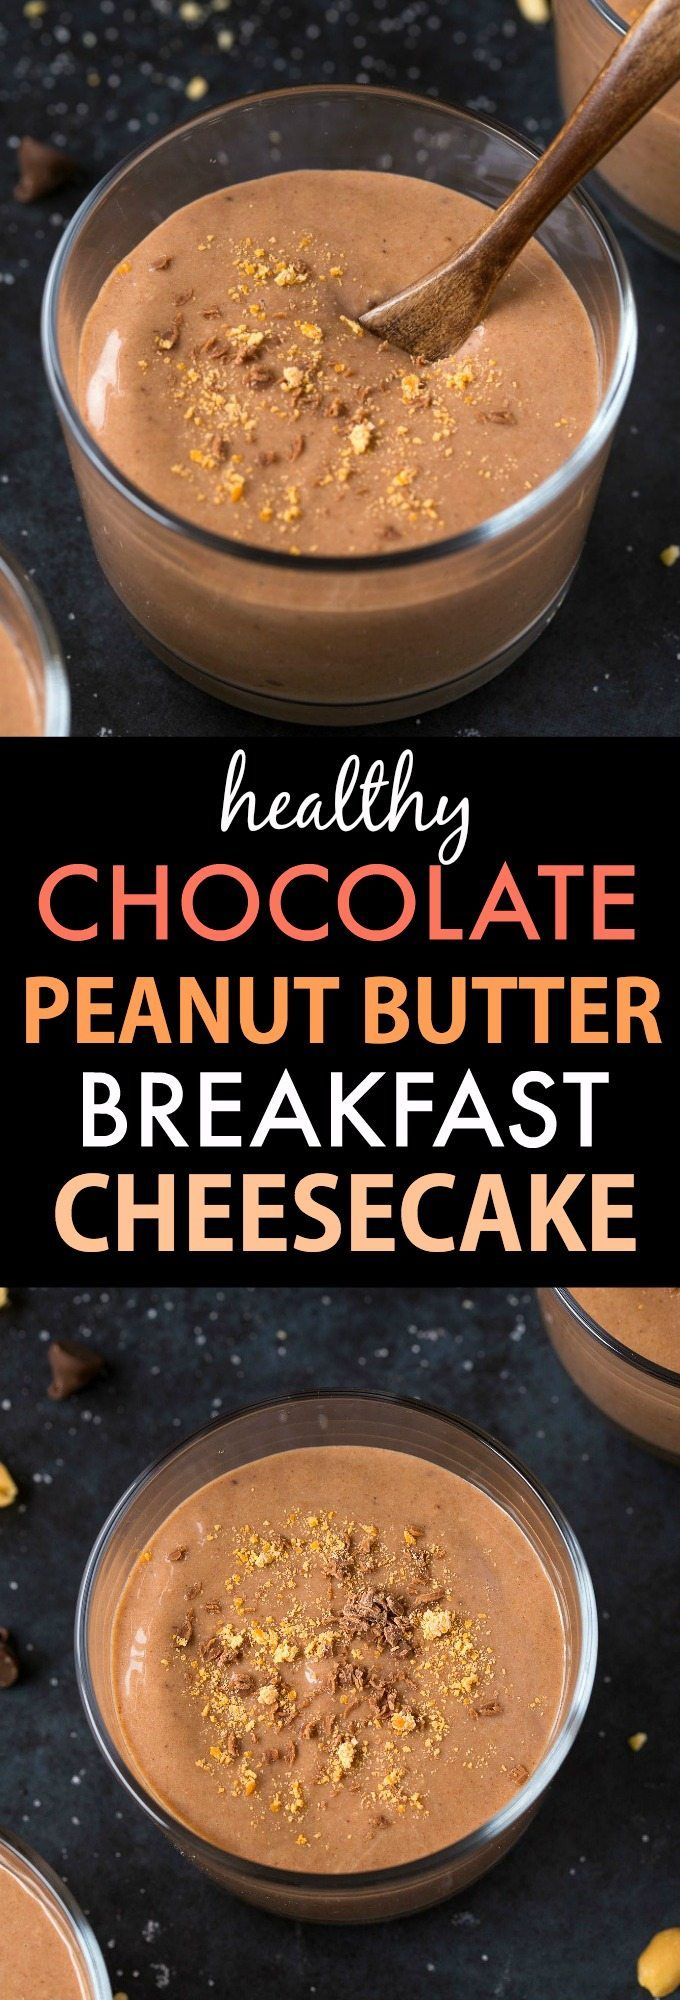 Healthy Chocolate Peanut Butter Breakfast Cheesecake (V, GF, DF)- Thick, creamy and packed with protein, this clean eating recipe is LOADED with peanut butter flavor (peanut flour and PB2), minus all the fat and zero sugar! {vegan, gluten fee, sugar free recipe}- thebigmansworld.com